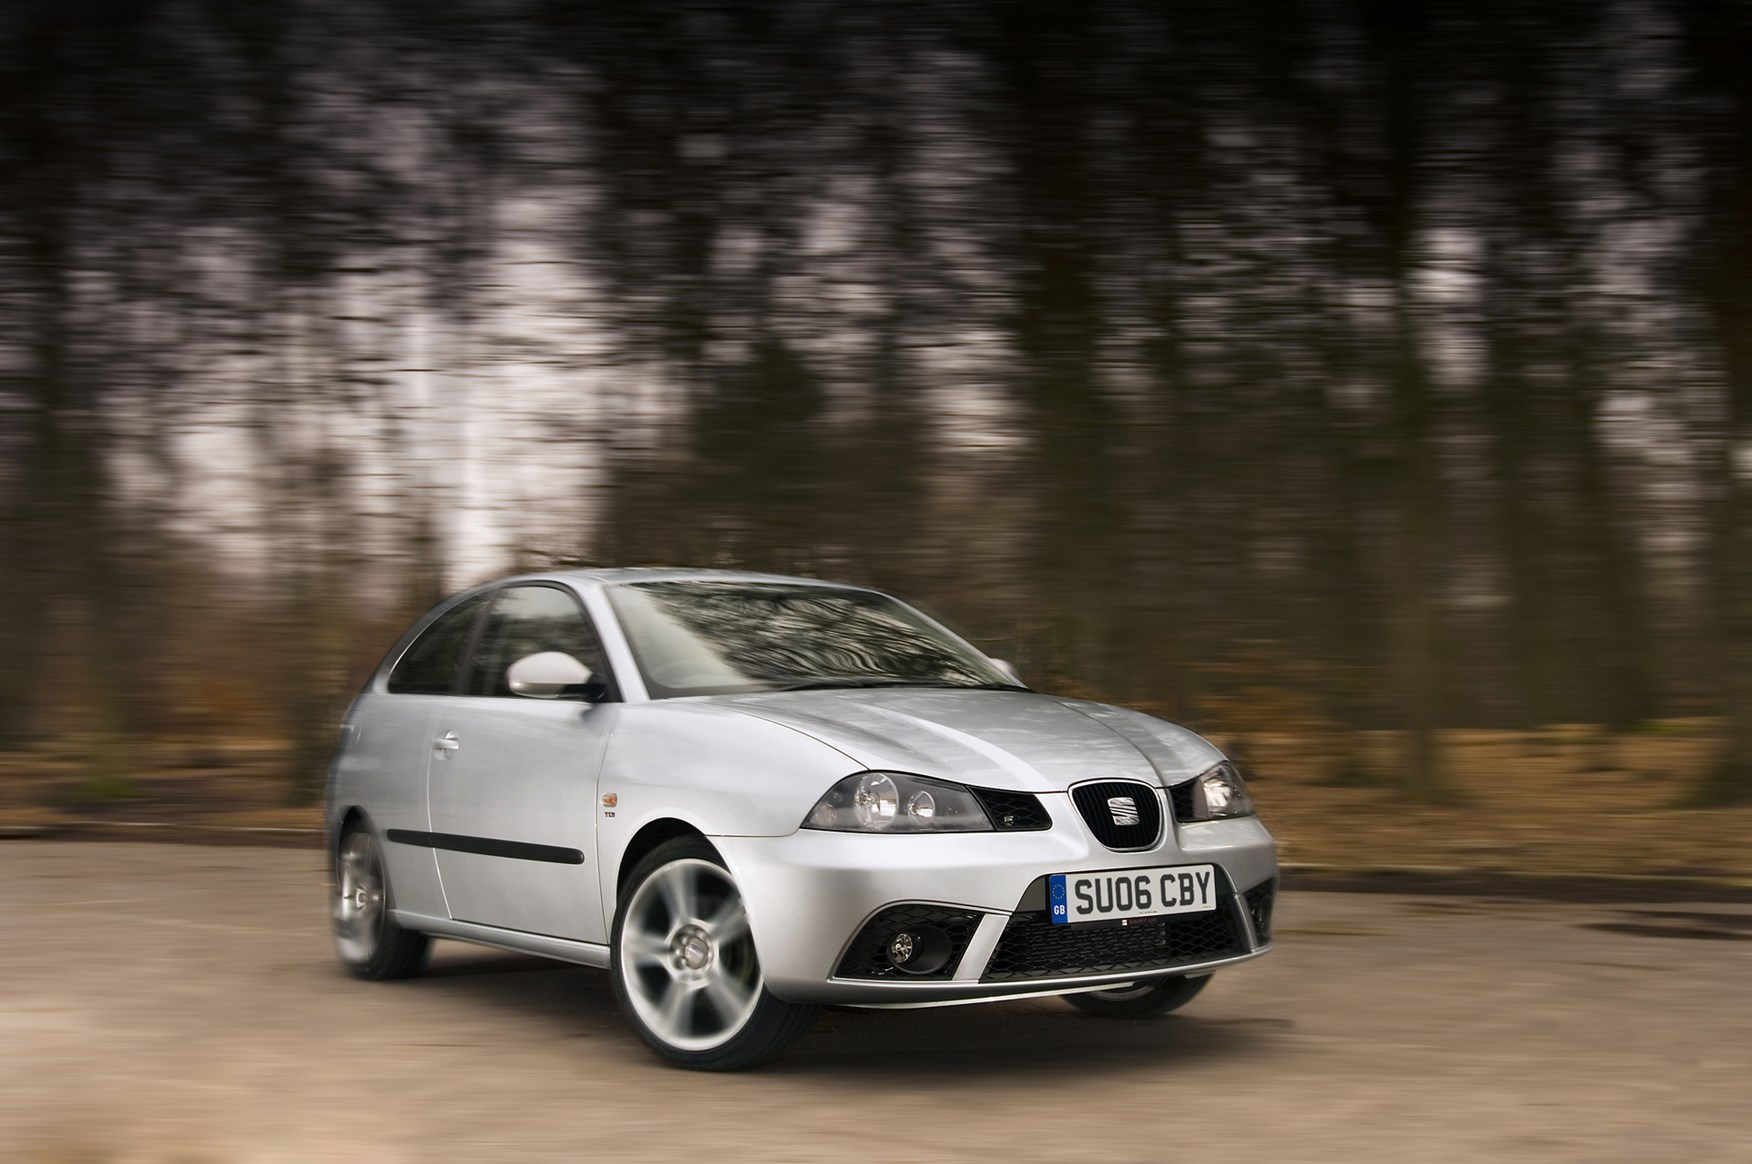 seat ibiza hatchback review 2002 2009 parkers. Black Bedroom Furniture Sets. Home Design Ideas